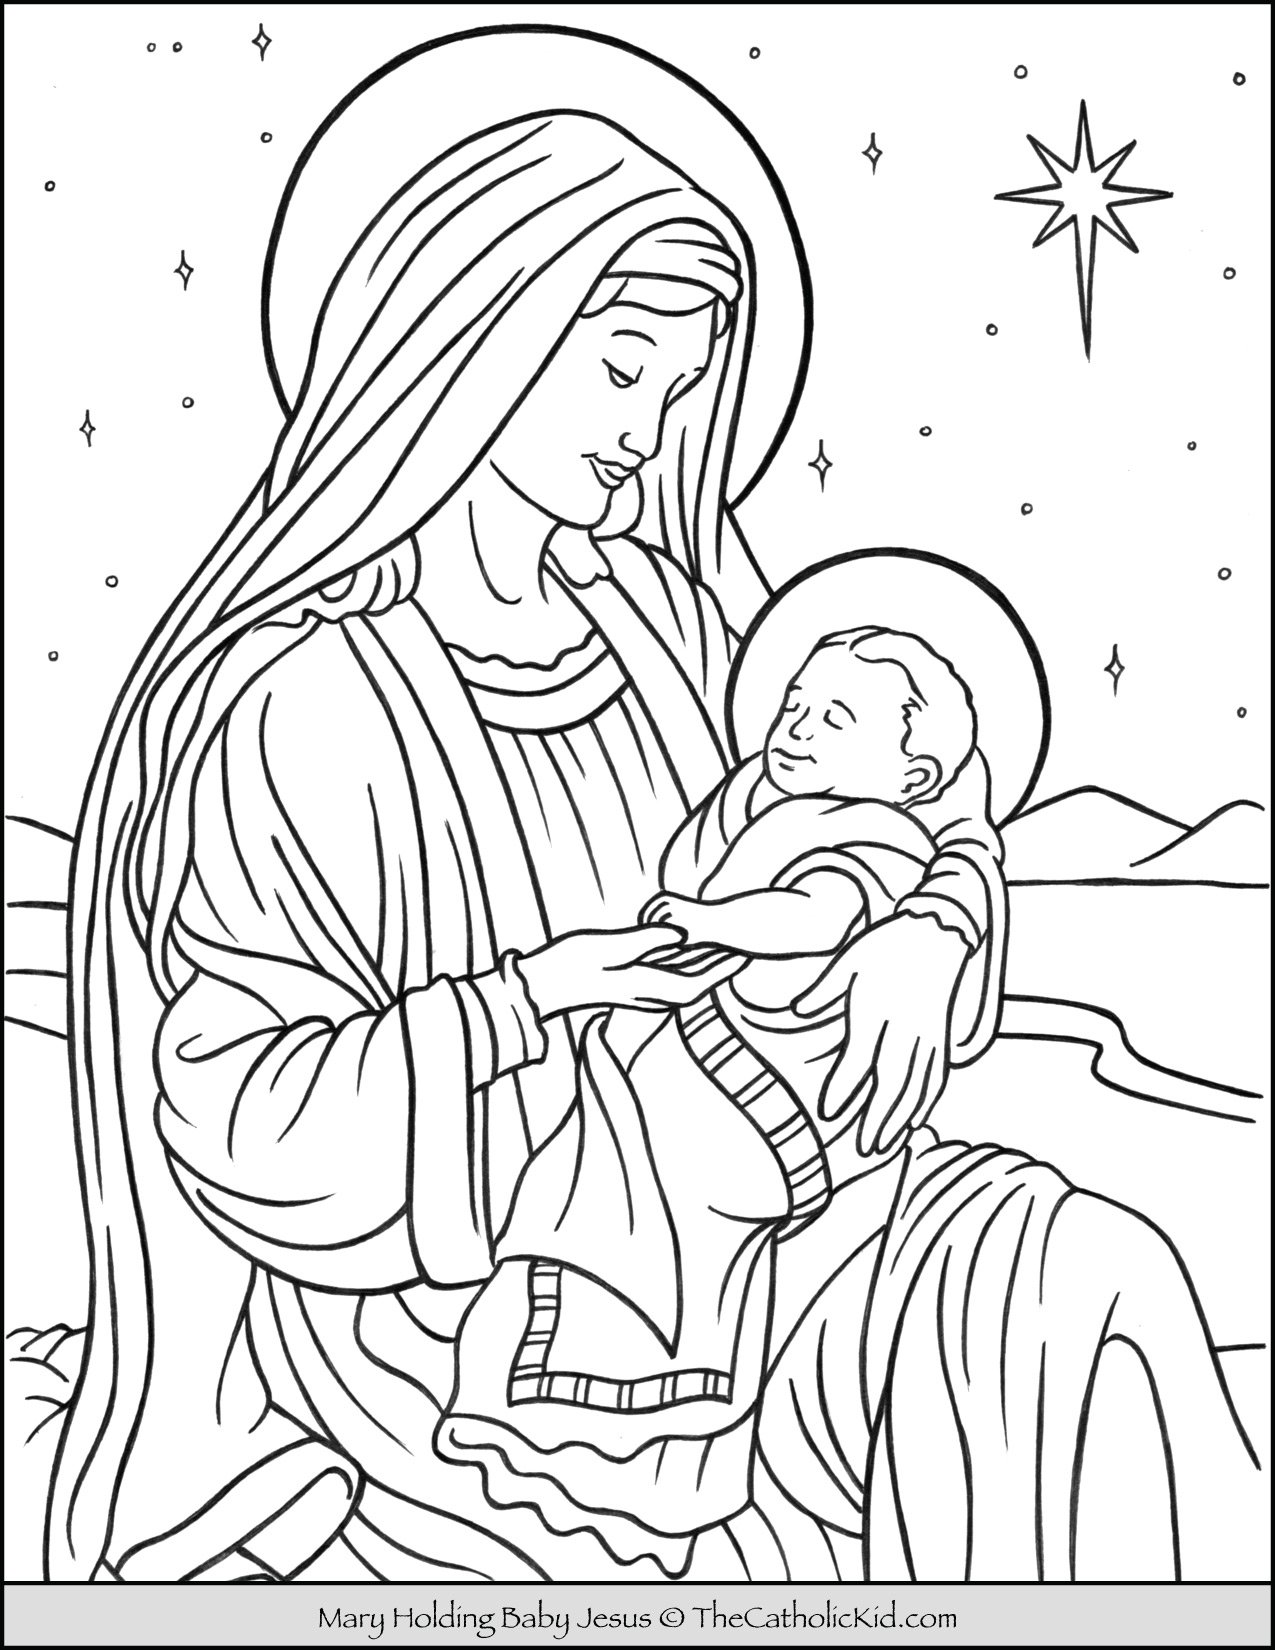 Mary With Baby Jesus In Bethlehem Coloring Page Thecatholickid Com